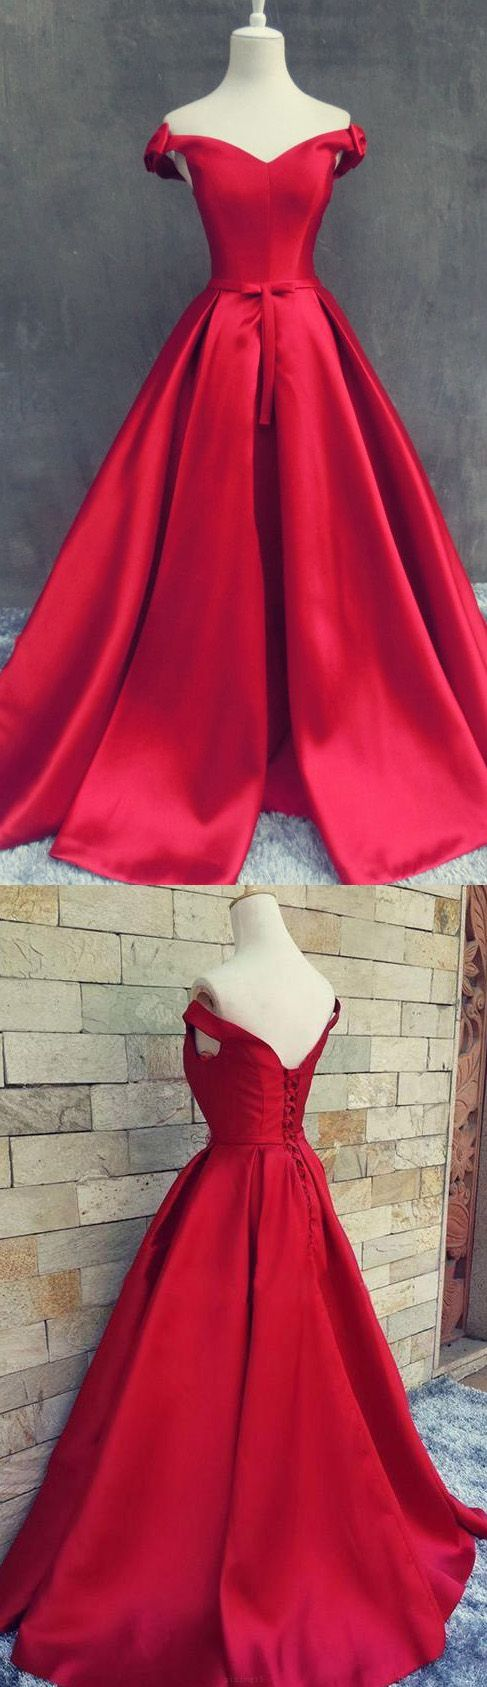 Sweep train prom evening dress long red dresses with lace up pleated